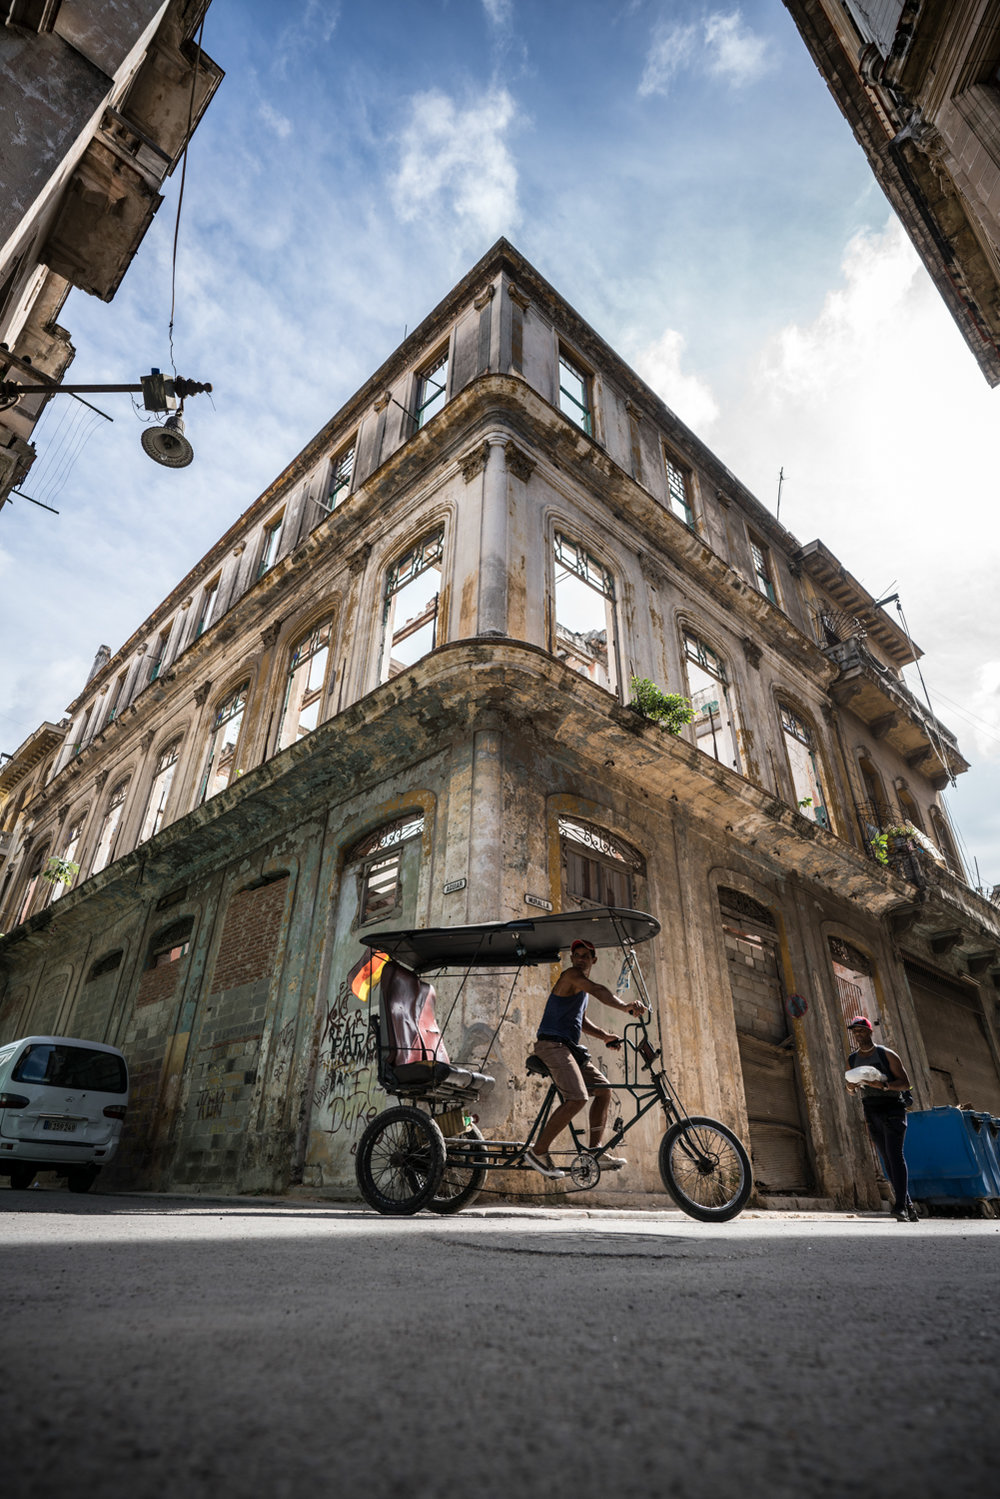 This was when we first ventured off into the narrow streets in Habana Vieja.  This seemed more authentic since it was mostly locals in front of their houses and many buildings like this which were completely hollowed out.  Sony A7RII, Zeiss Batis 18mm f/2.8 (iso100, f/4, 1/500s)